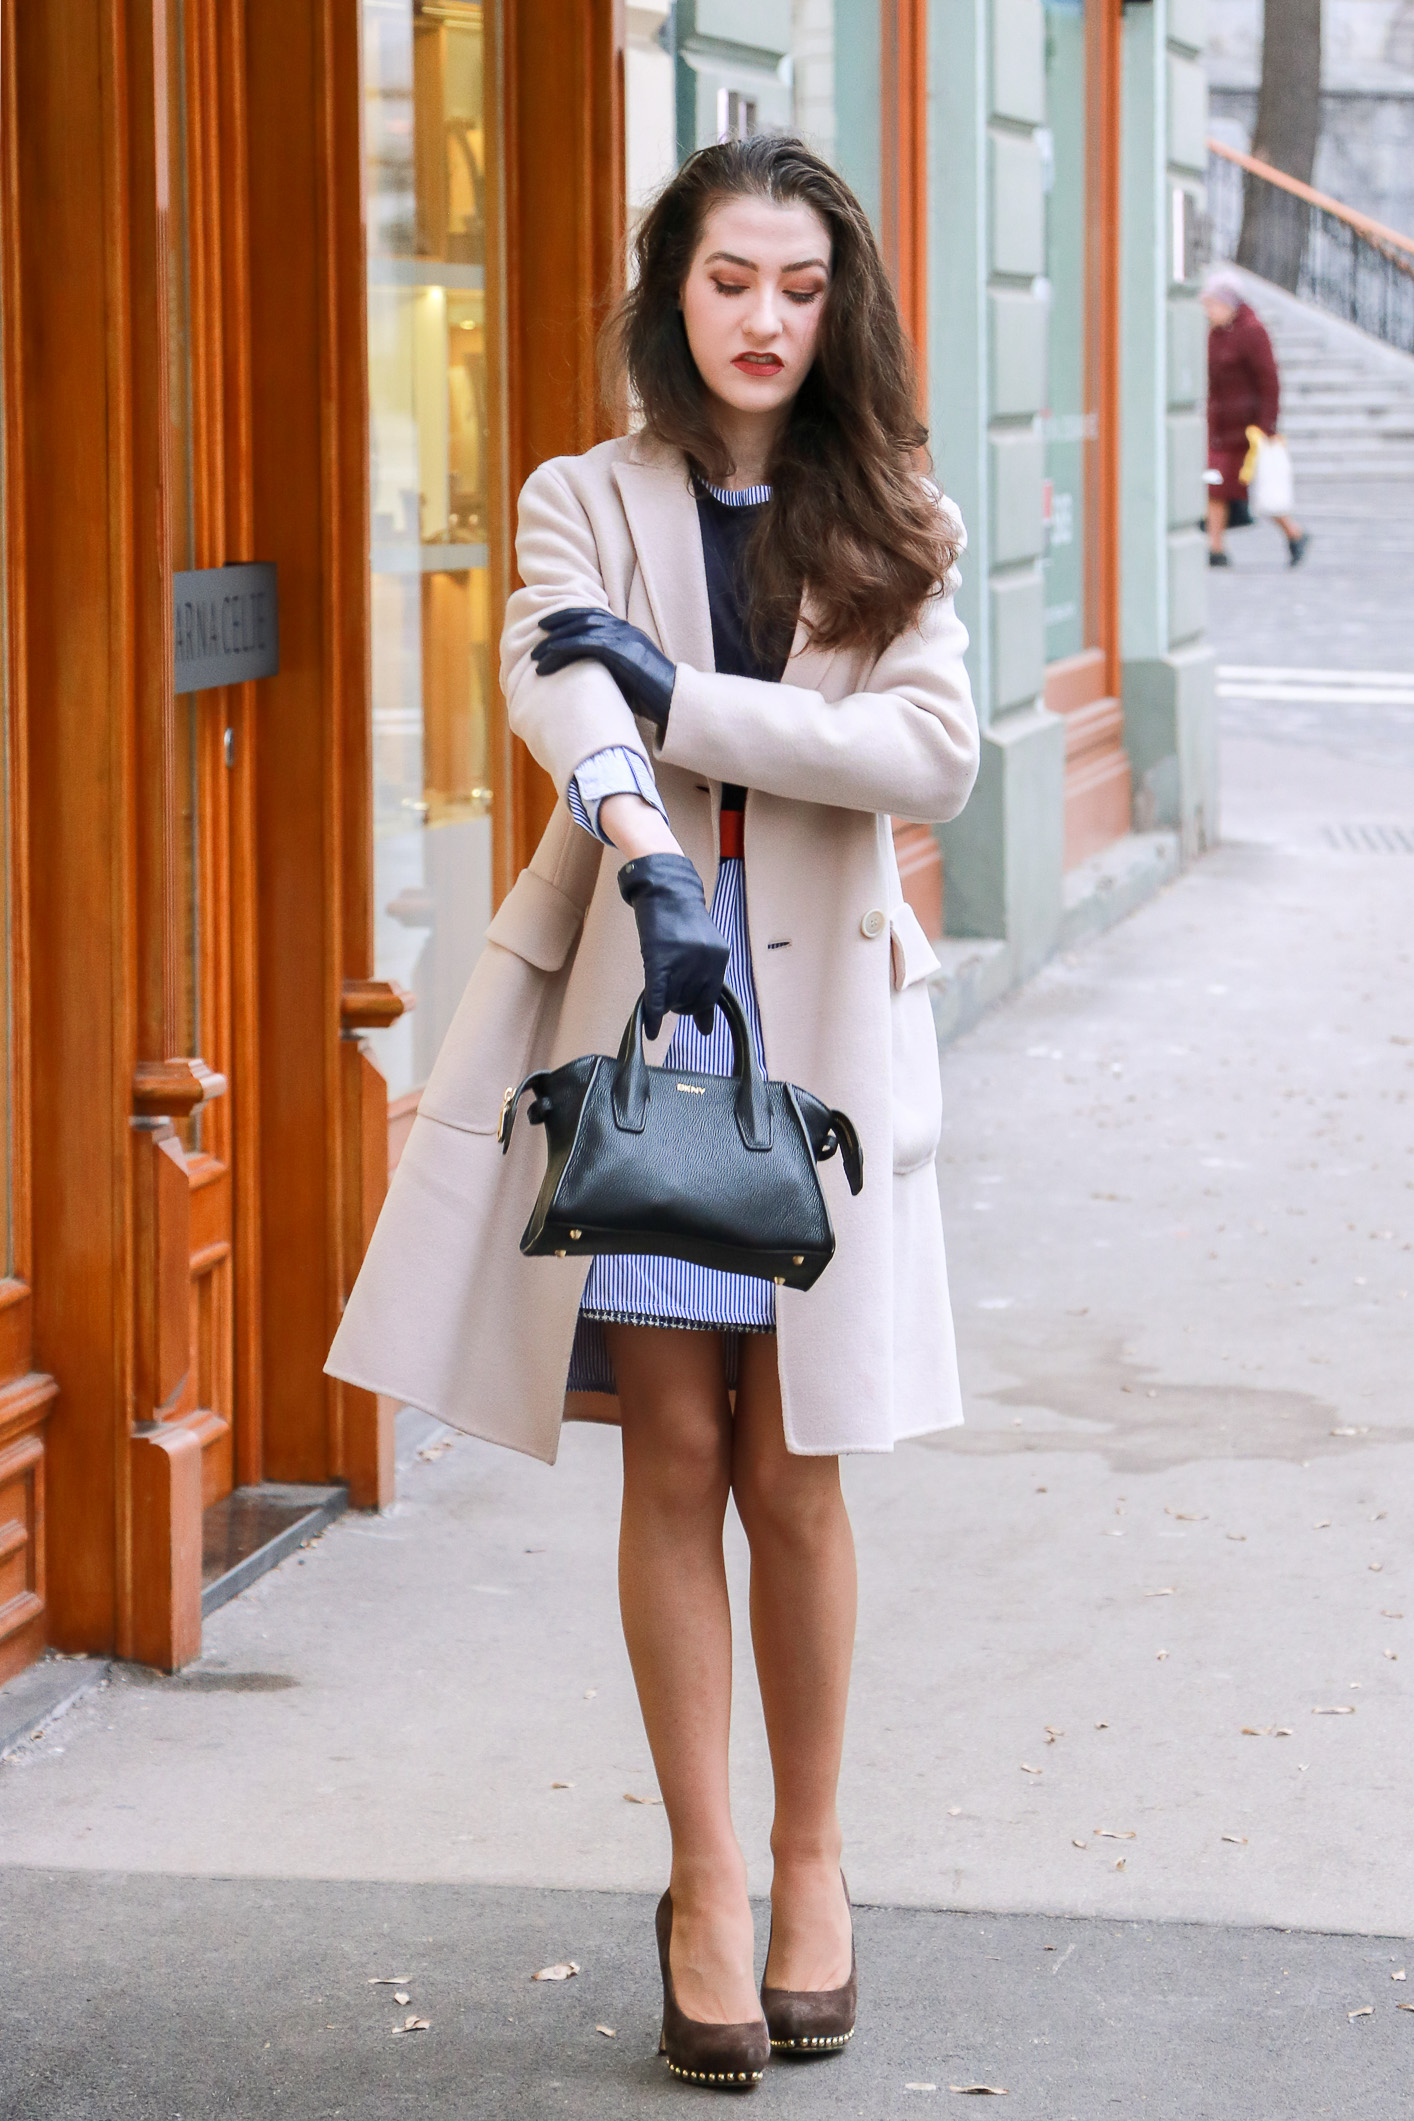 Fashion Blogger Veronika Lipar of Brunette from Wall Street sharing how to wear his shirt and wear it as a shirt dress